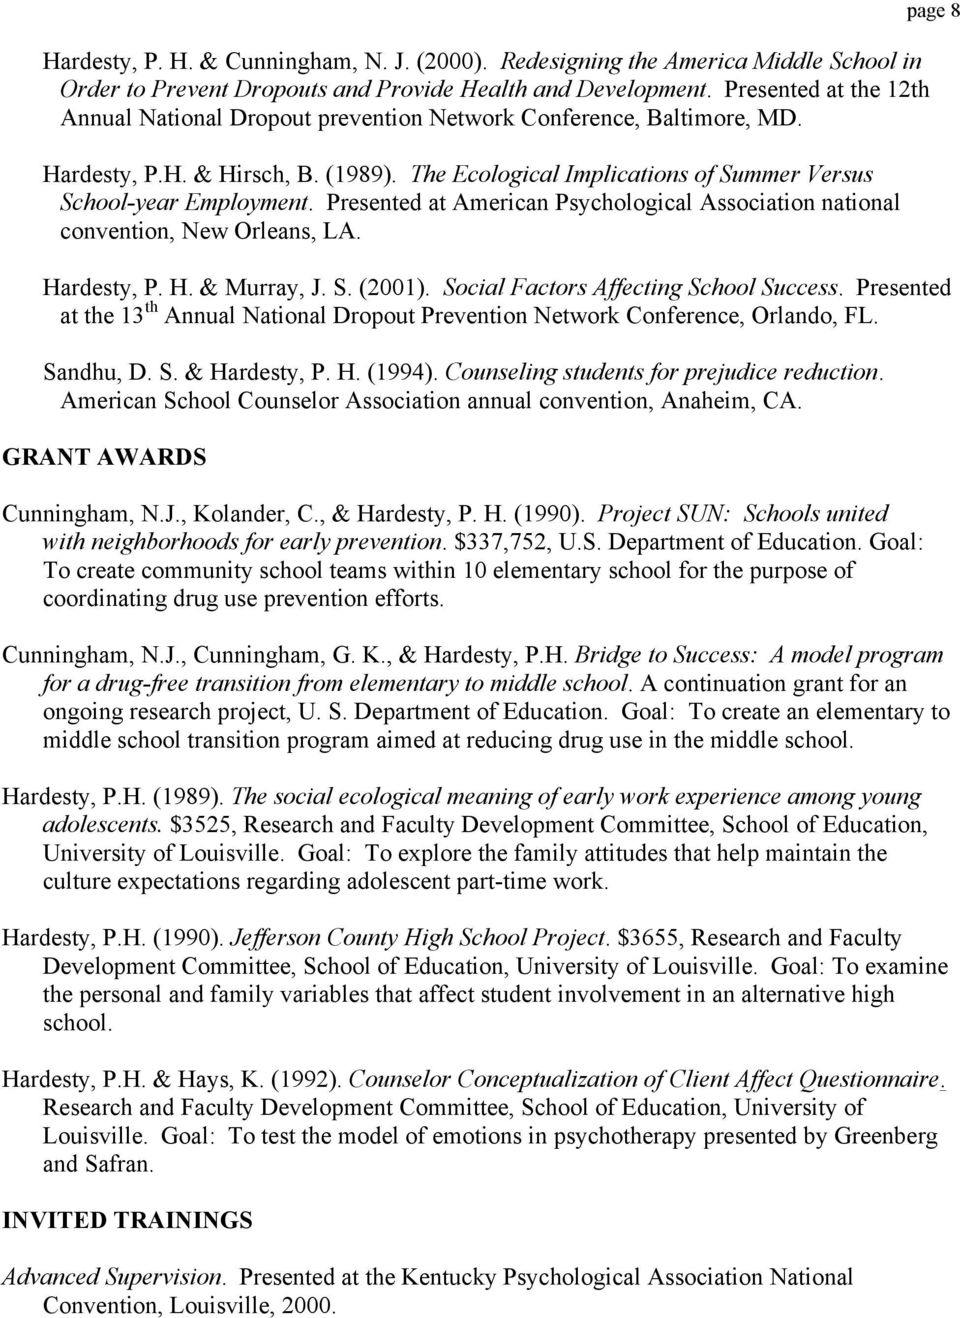 Presented at American Psychological Association national convention, New Orleans, LA. page 8 Hardesty, P. H. & Murray, J. S. (2001). Social Factors Affecting School Success.